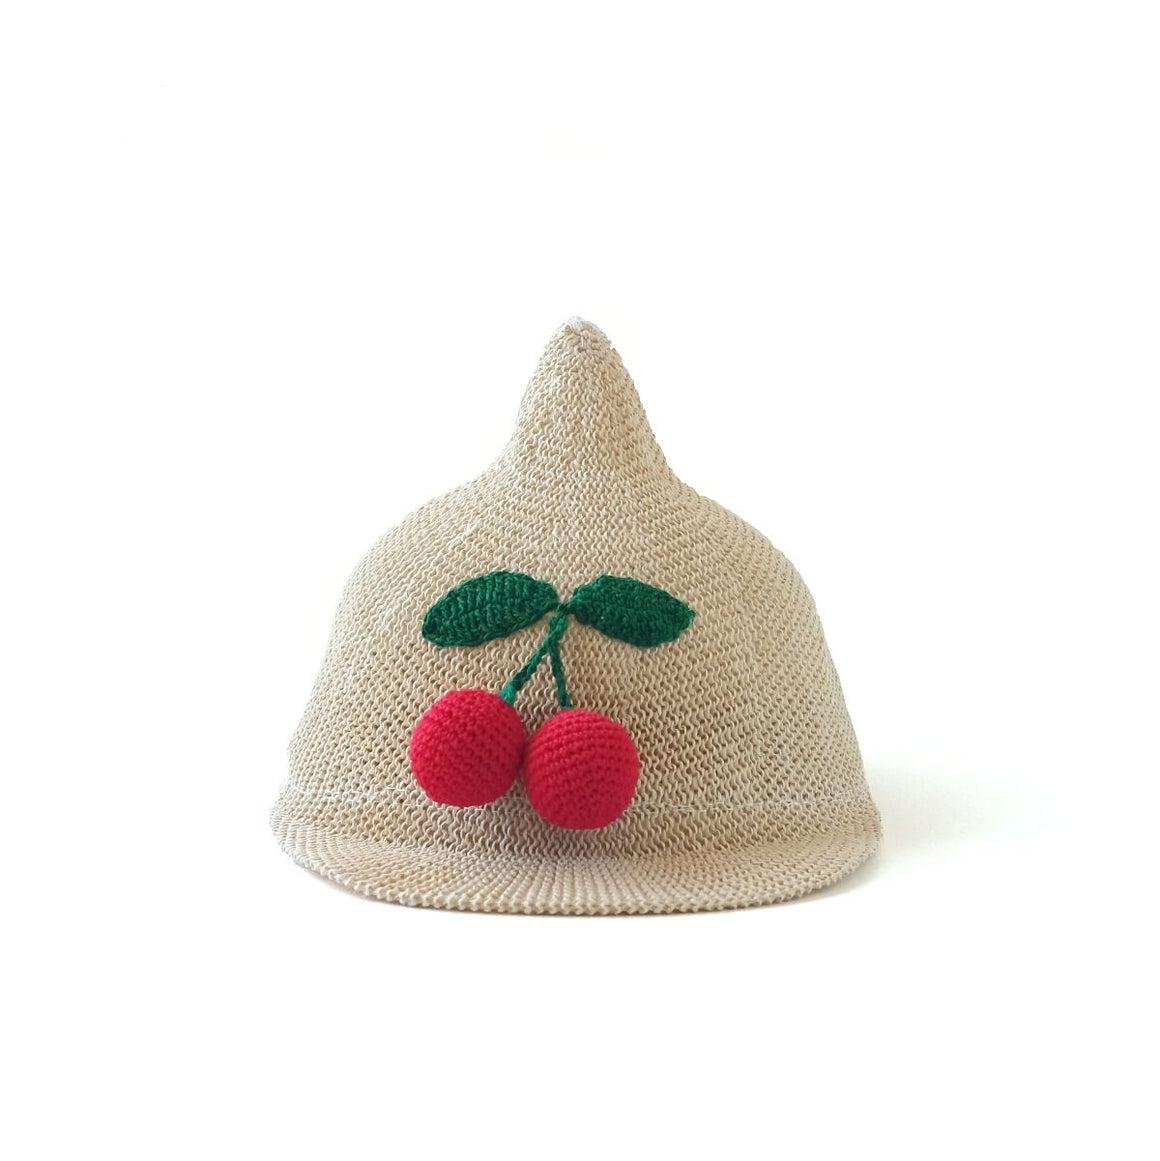 cherry hat // hello shiso hair accessories for girls